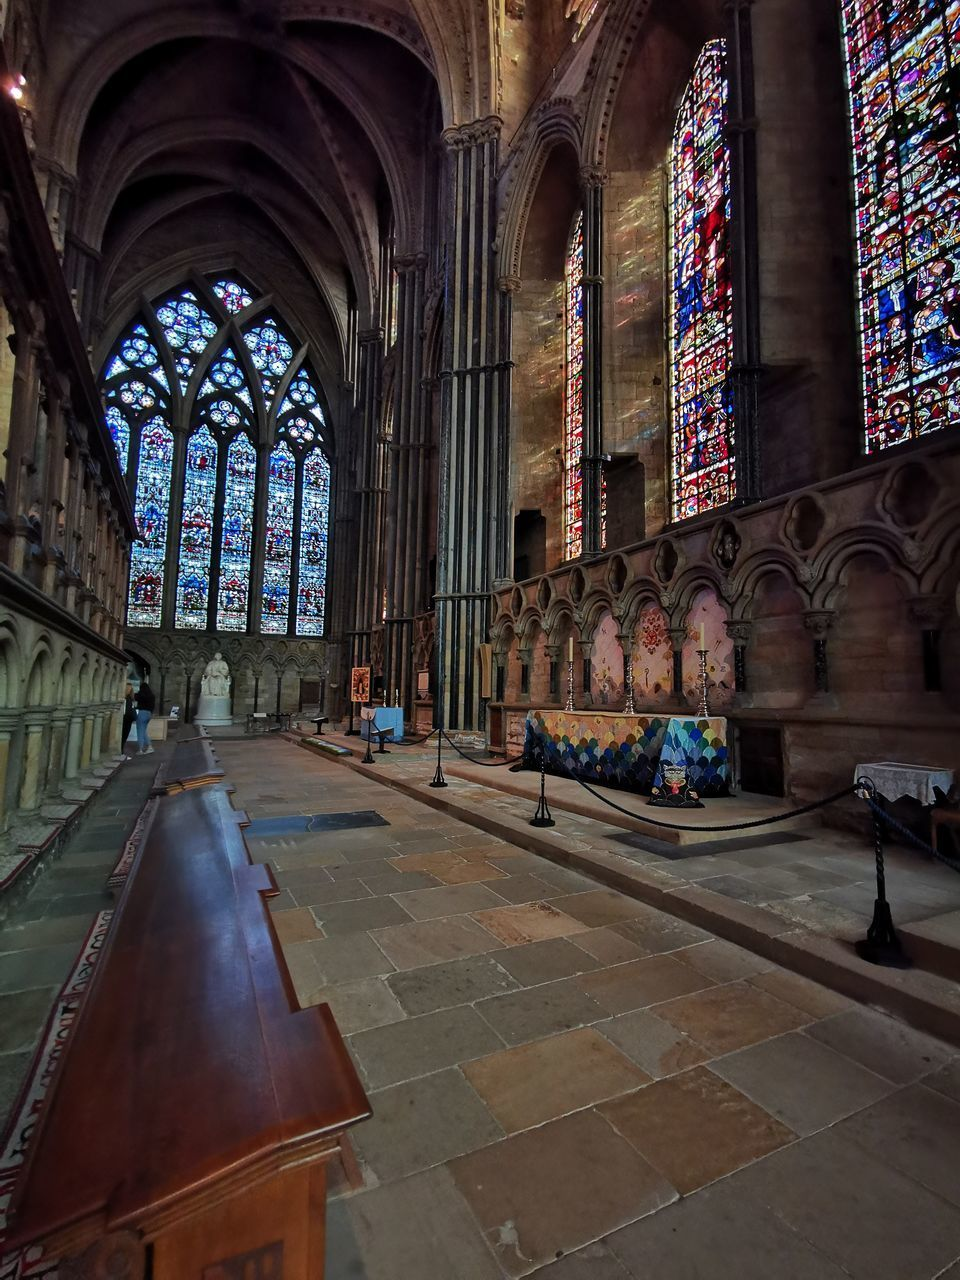 religion, spirituality, belief, place of worship, architecture, built structure, building, indoors, arch, pew, stained glass, day, glass, art and craft, window, architectural column, aisle, tiled floor, ornate